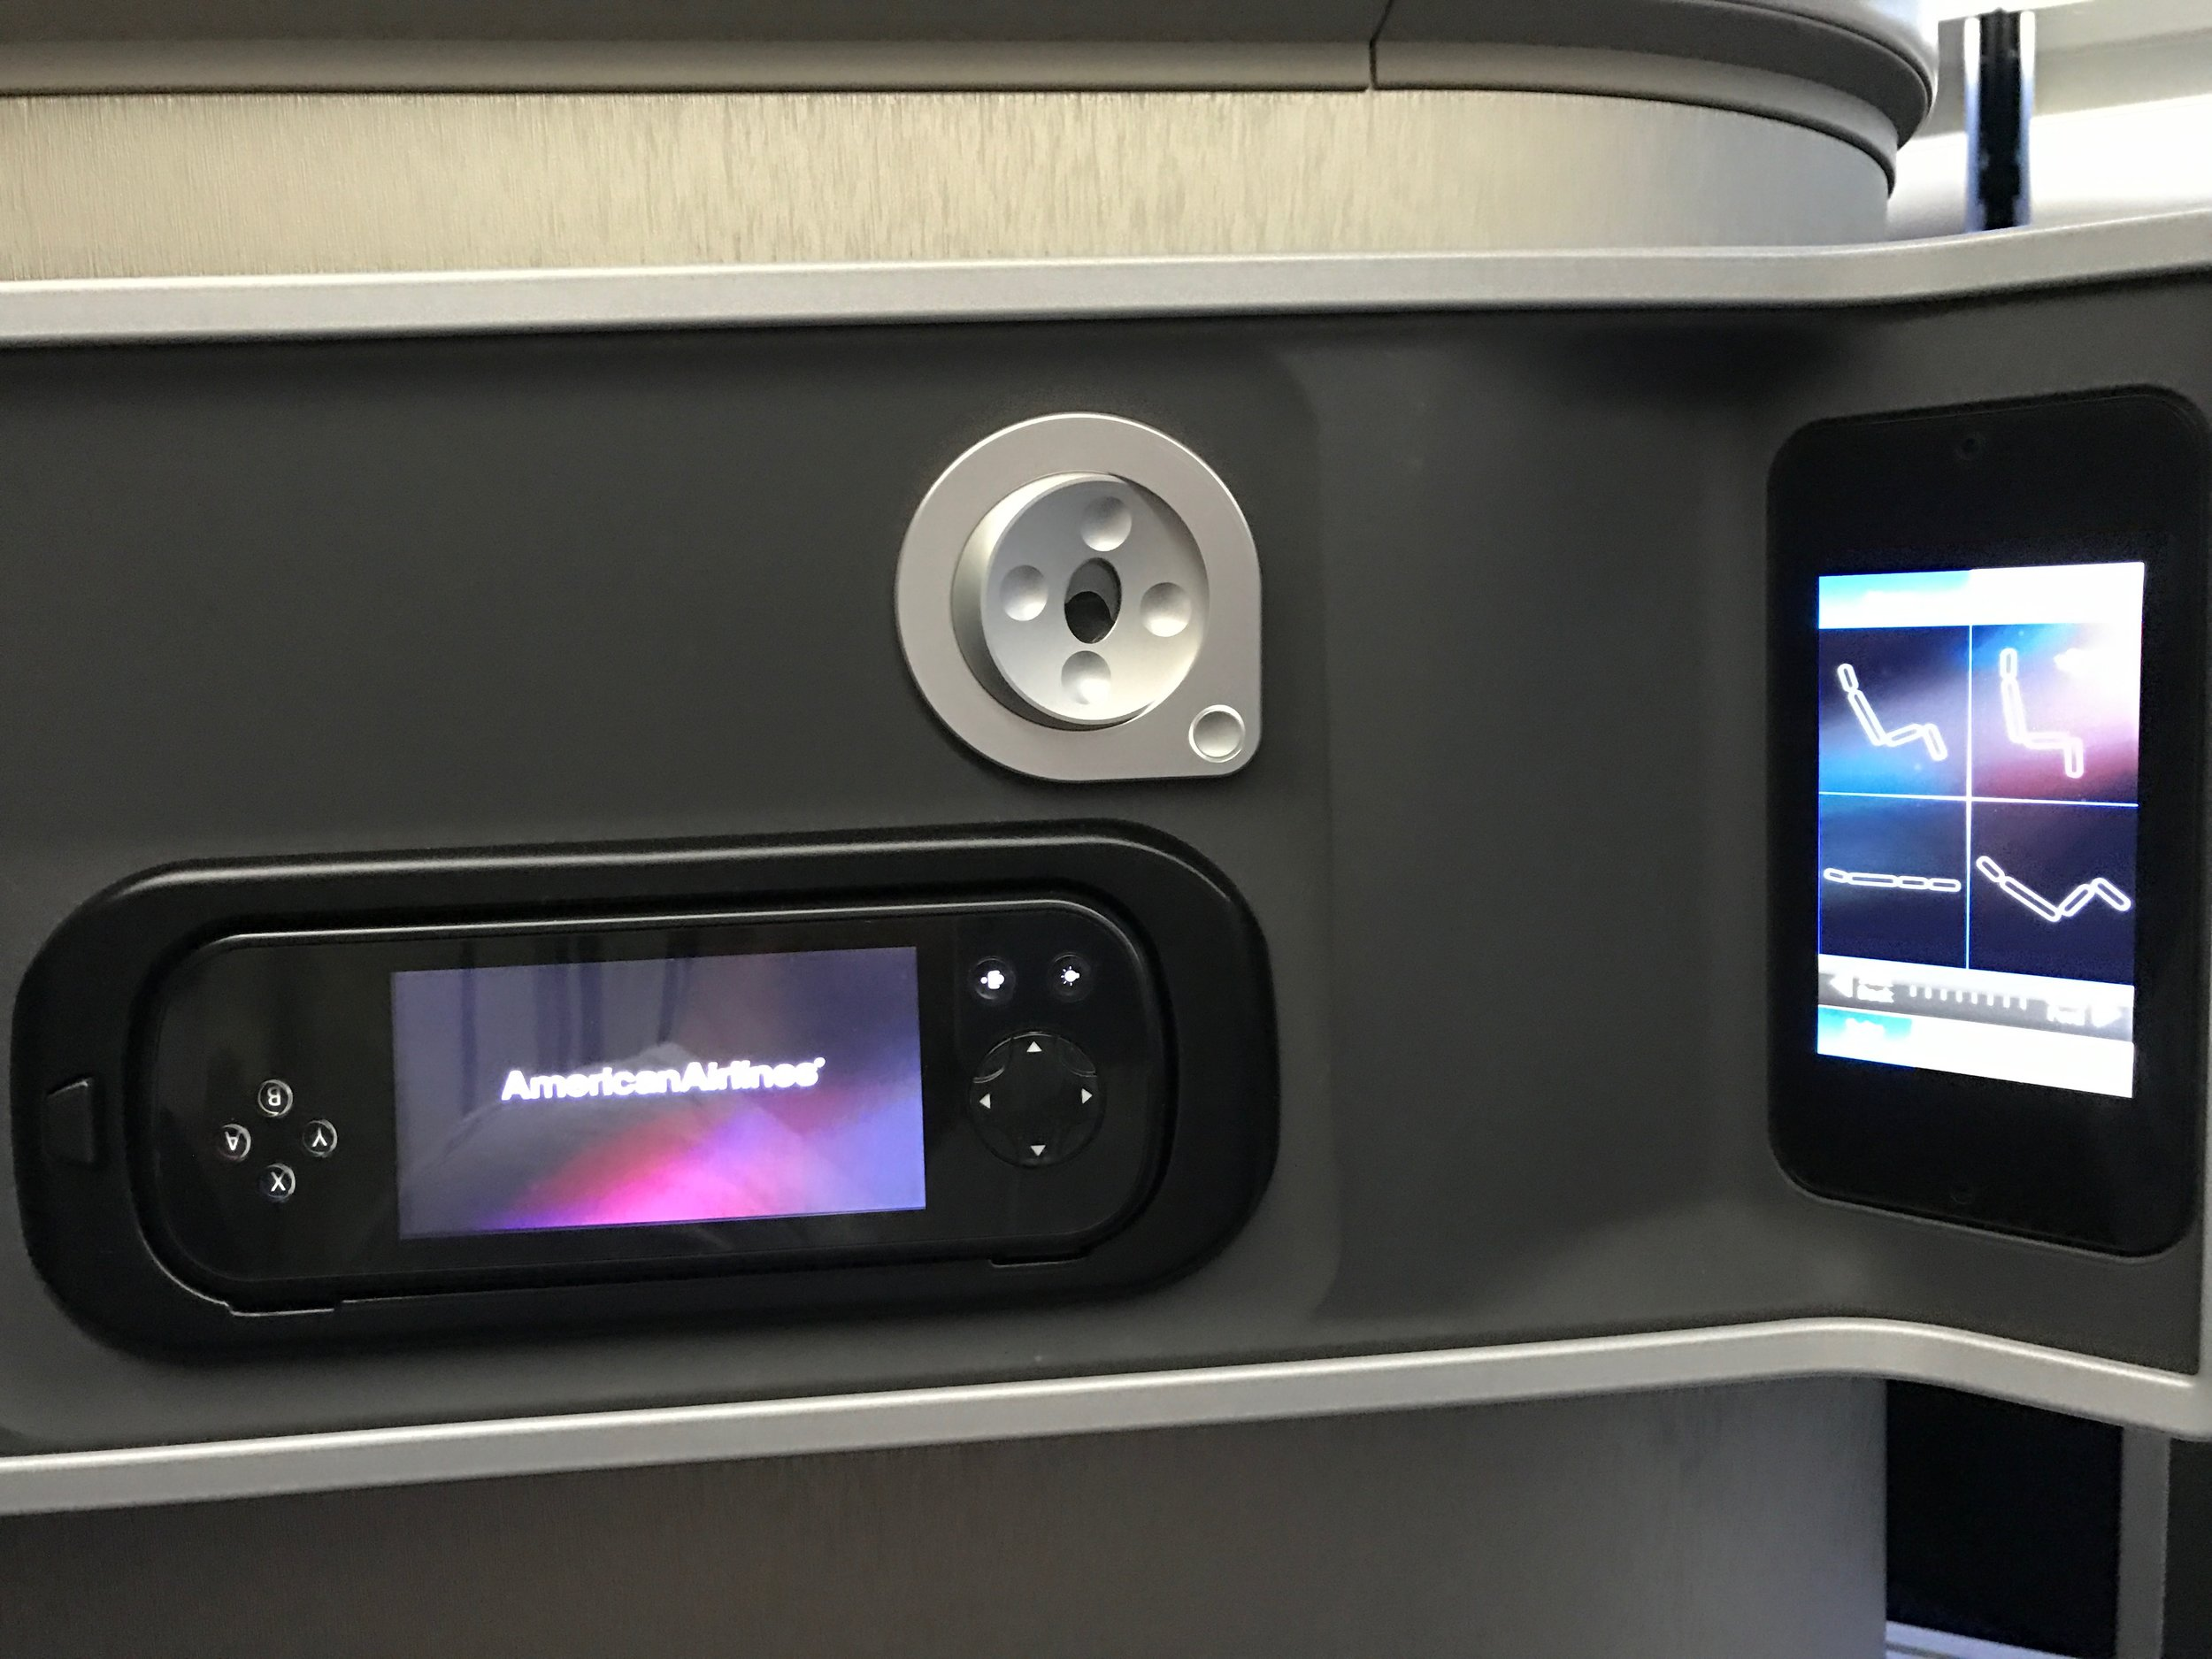 AA 787 Dreamliner Business Class IFE handset, reading light, and seat controls